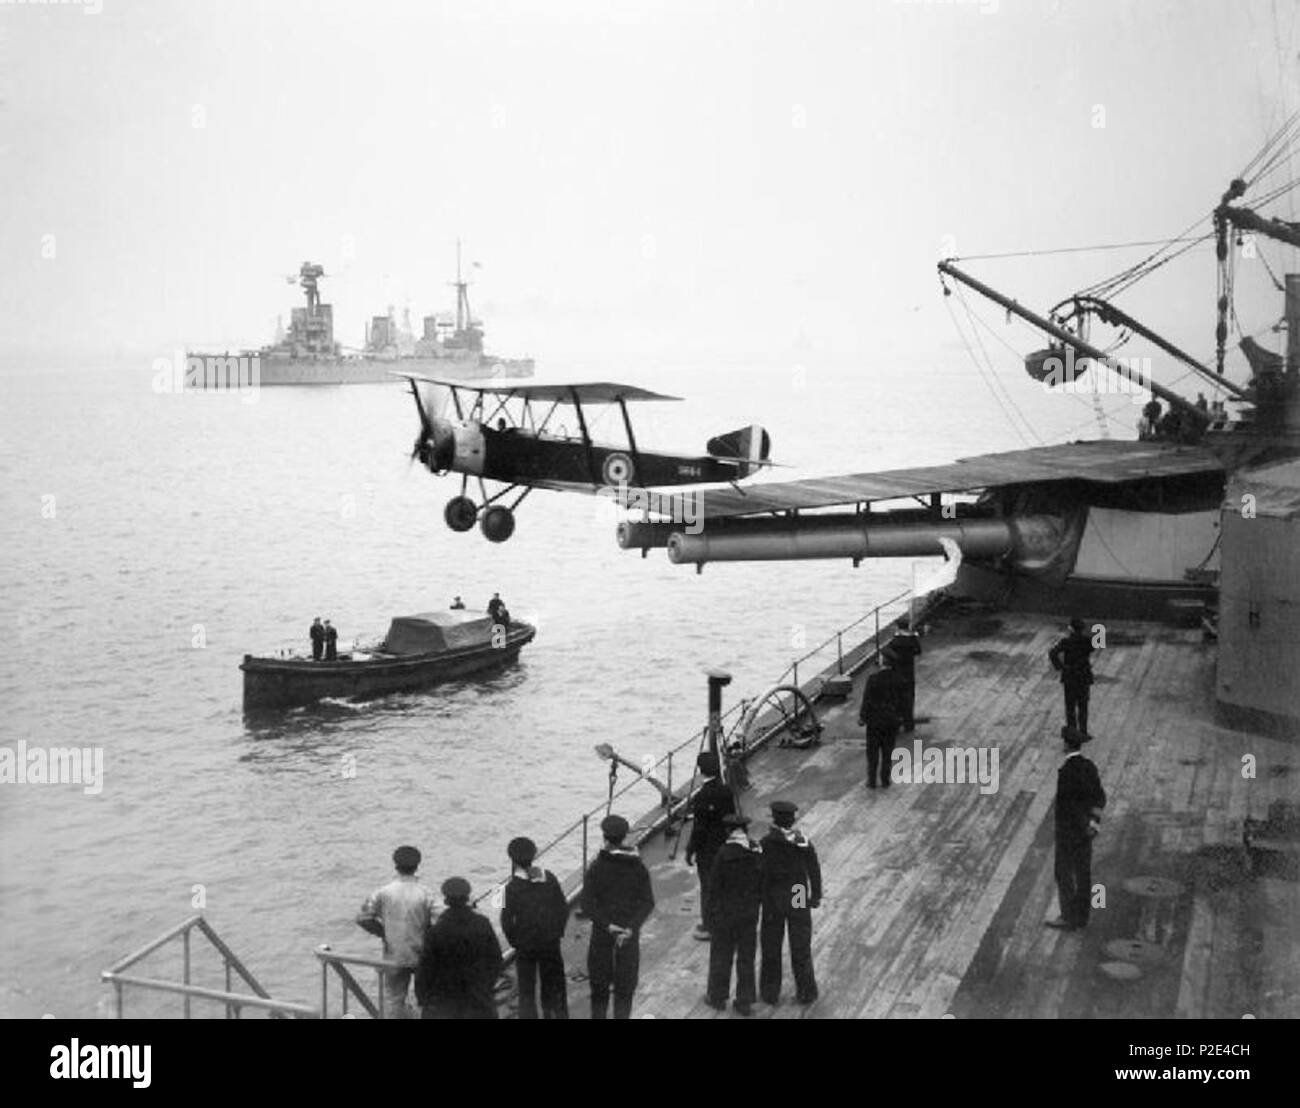 . A Sopwith 1 1/2 Strutter biplane aircraft taking off from a platform built on top of HMAS Australia's midships 'Q' turret. 1918. Associated News Agency 24 HMAS Australia launching aircraft 1918 - Stock Image